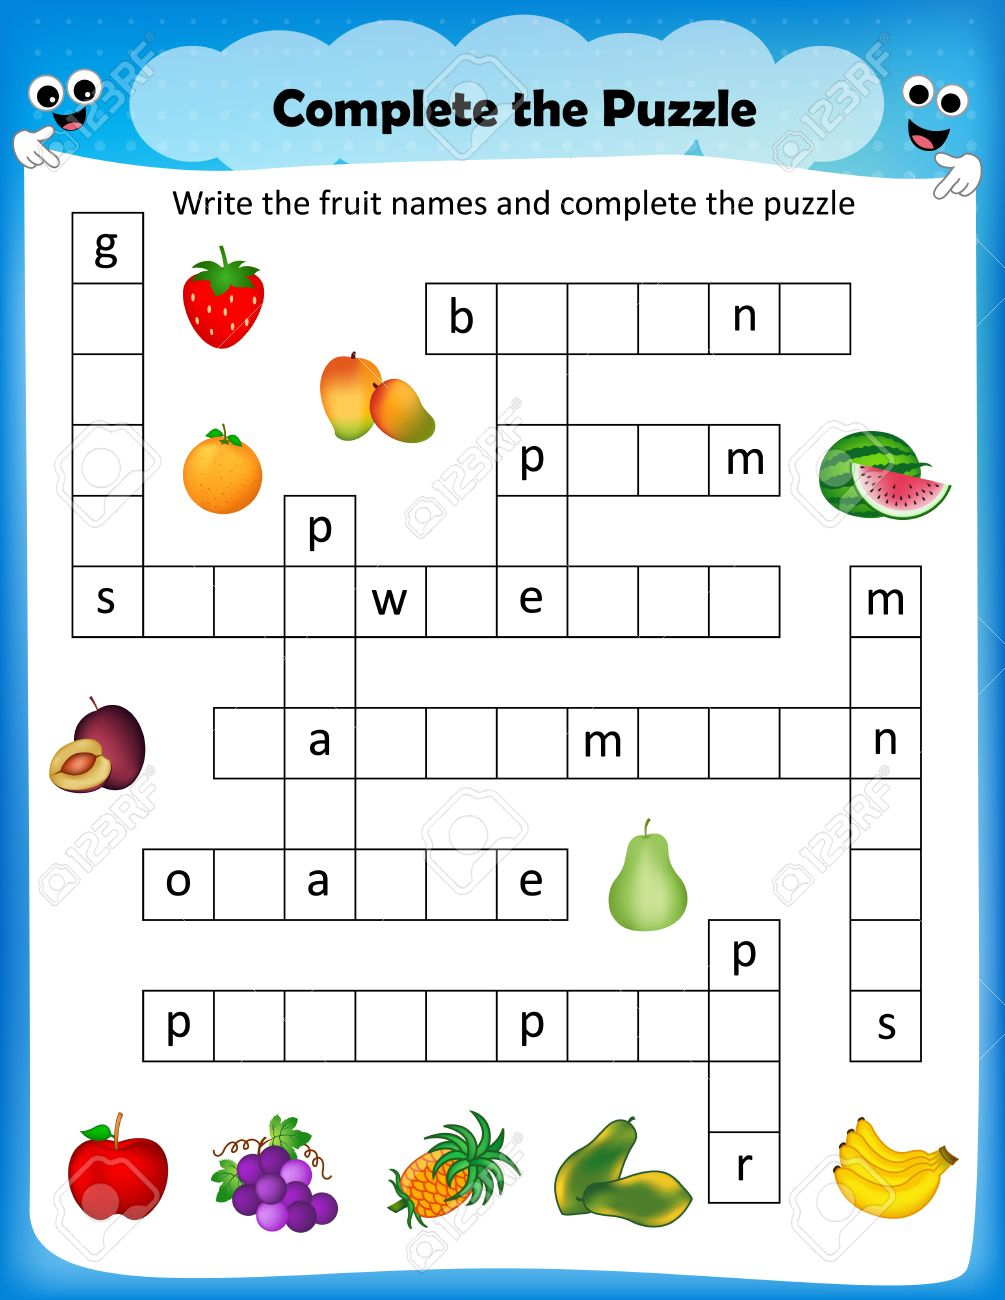 Worksheet - Complete The Crossword Puzzle Fruits Worksheet For - Worksheet On Puzzle